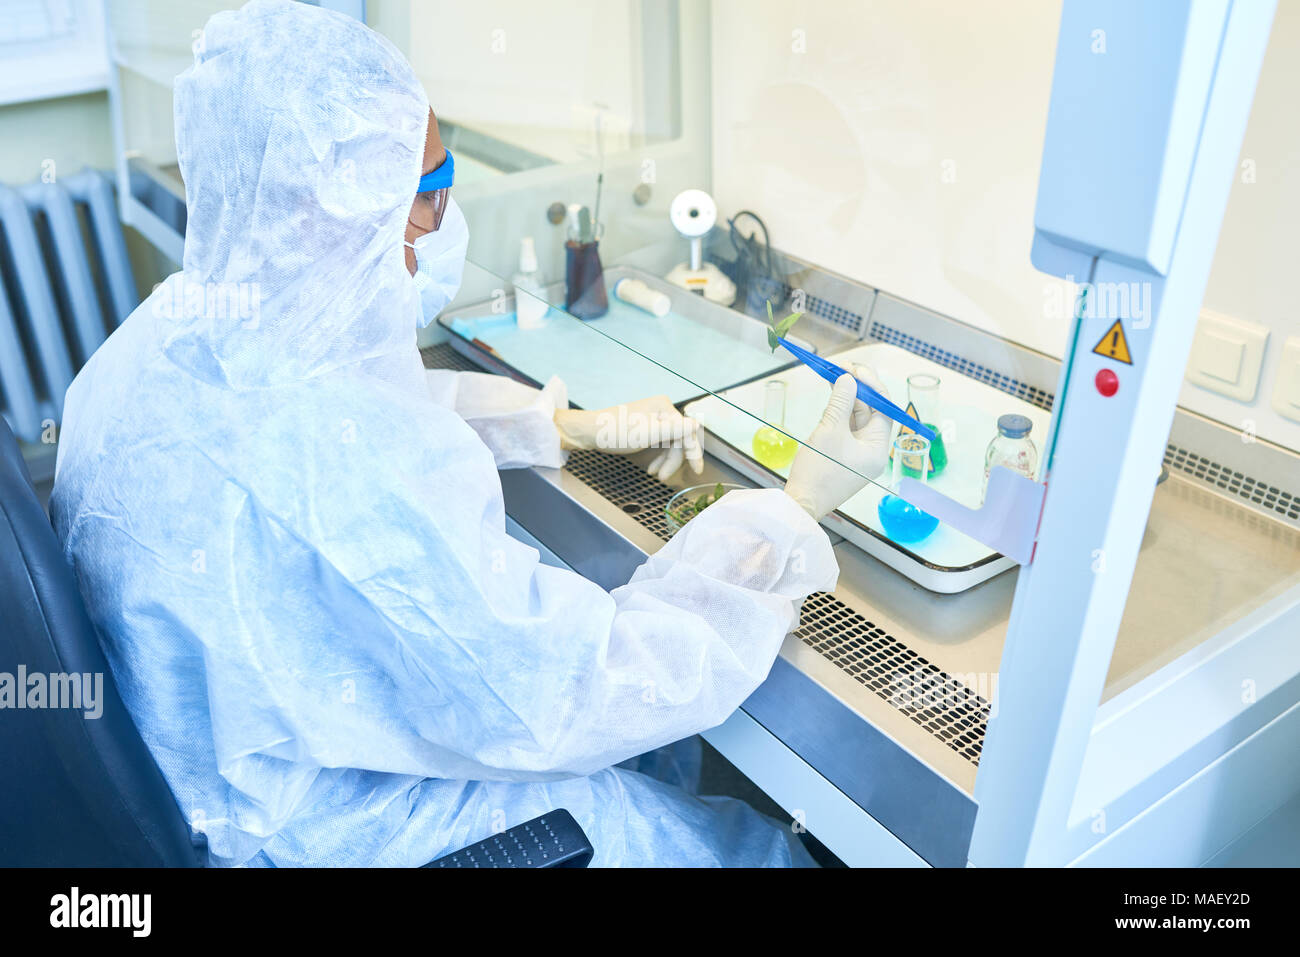 Biologist using leaves in chemical research - Stock Image